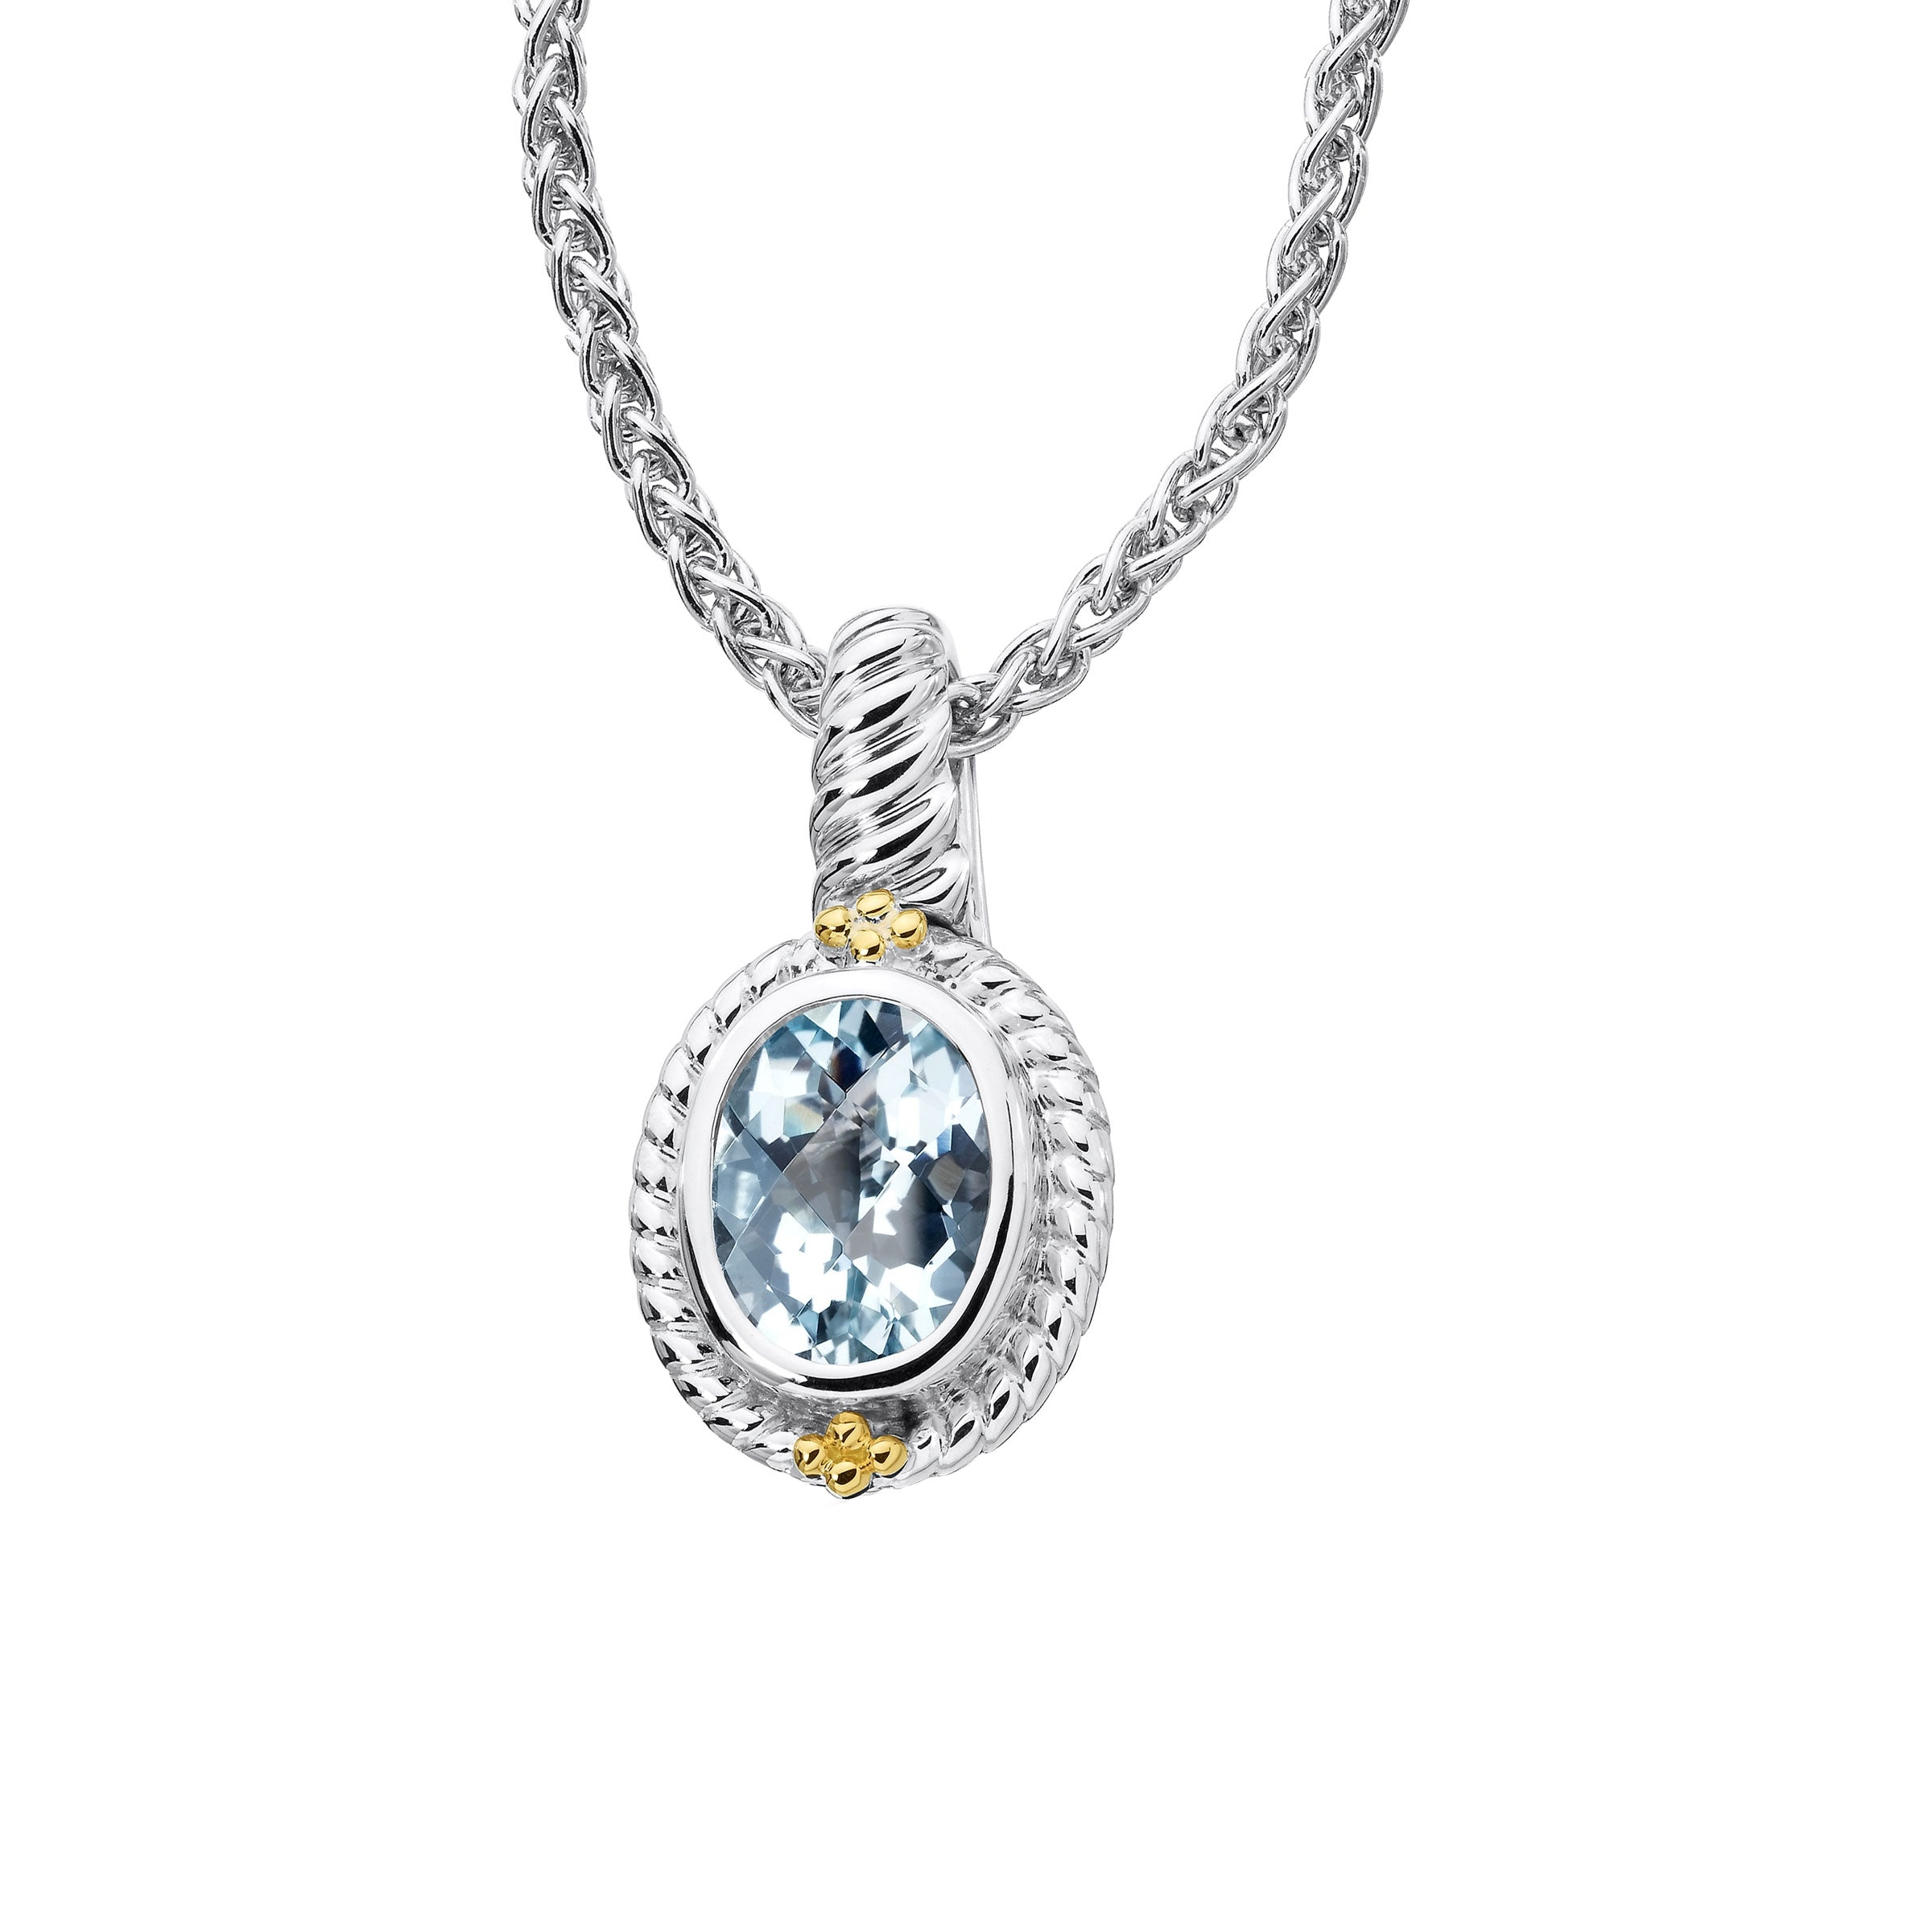 Framed Oval Aquamarine Pendant, Sterling Silver and 18K Gold